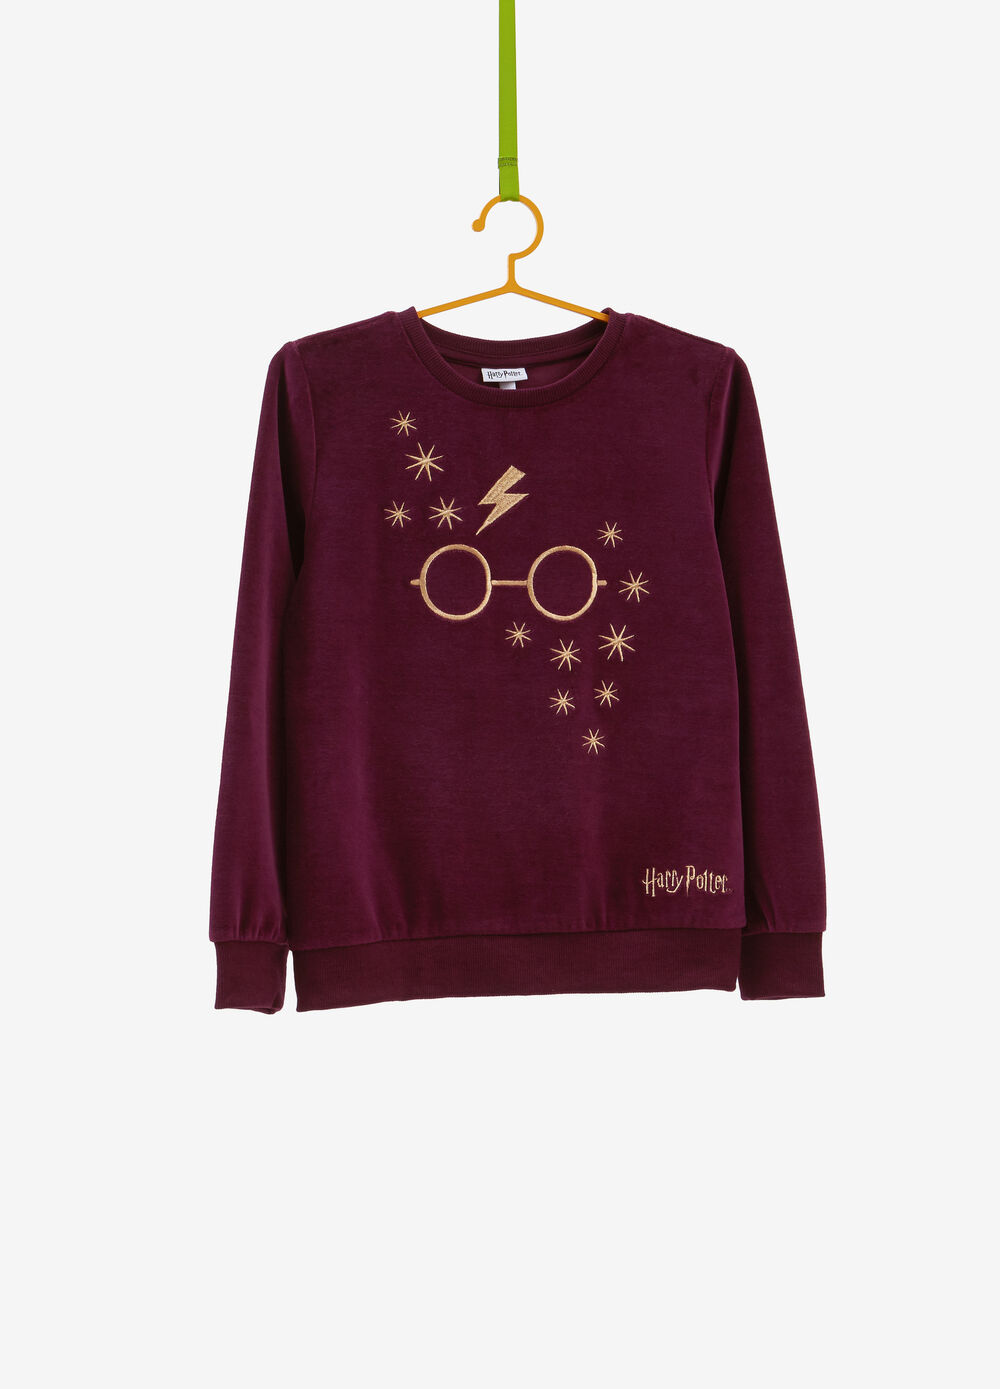 Cotton blend sweatshirt with Harry Potter embroidery